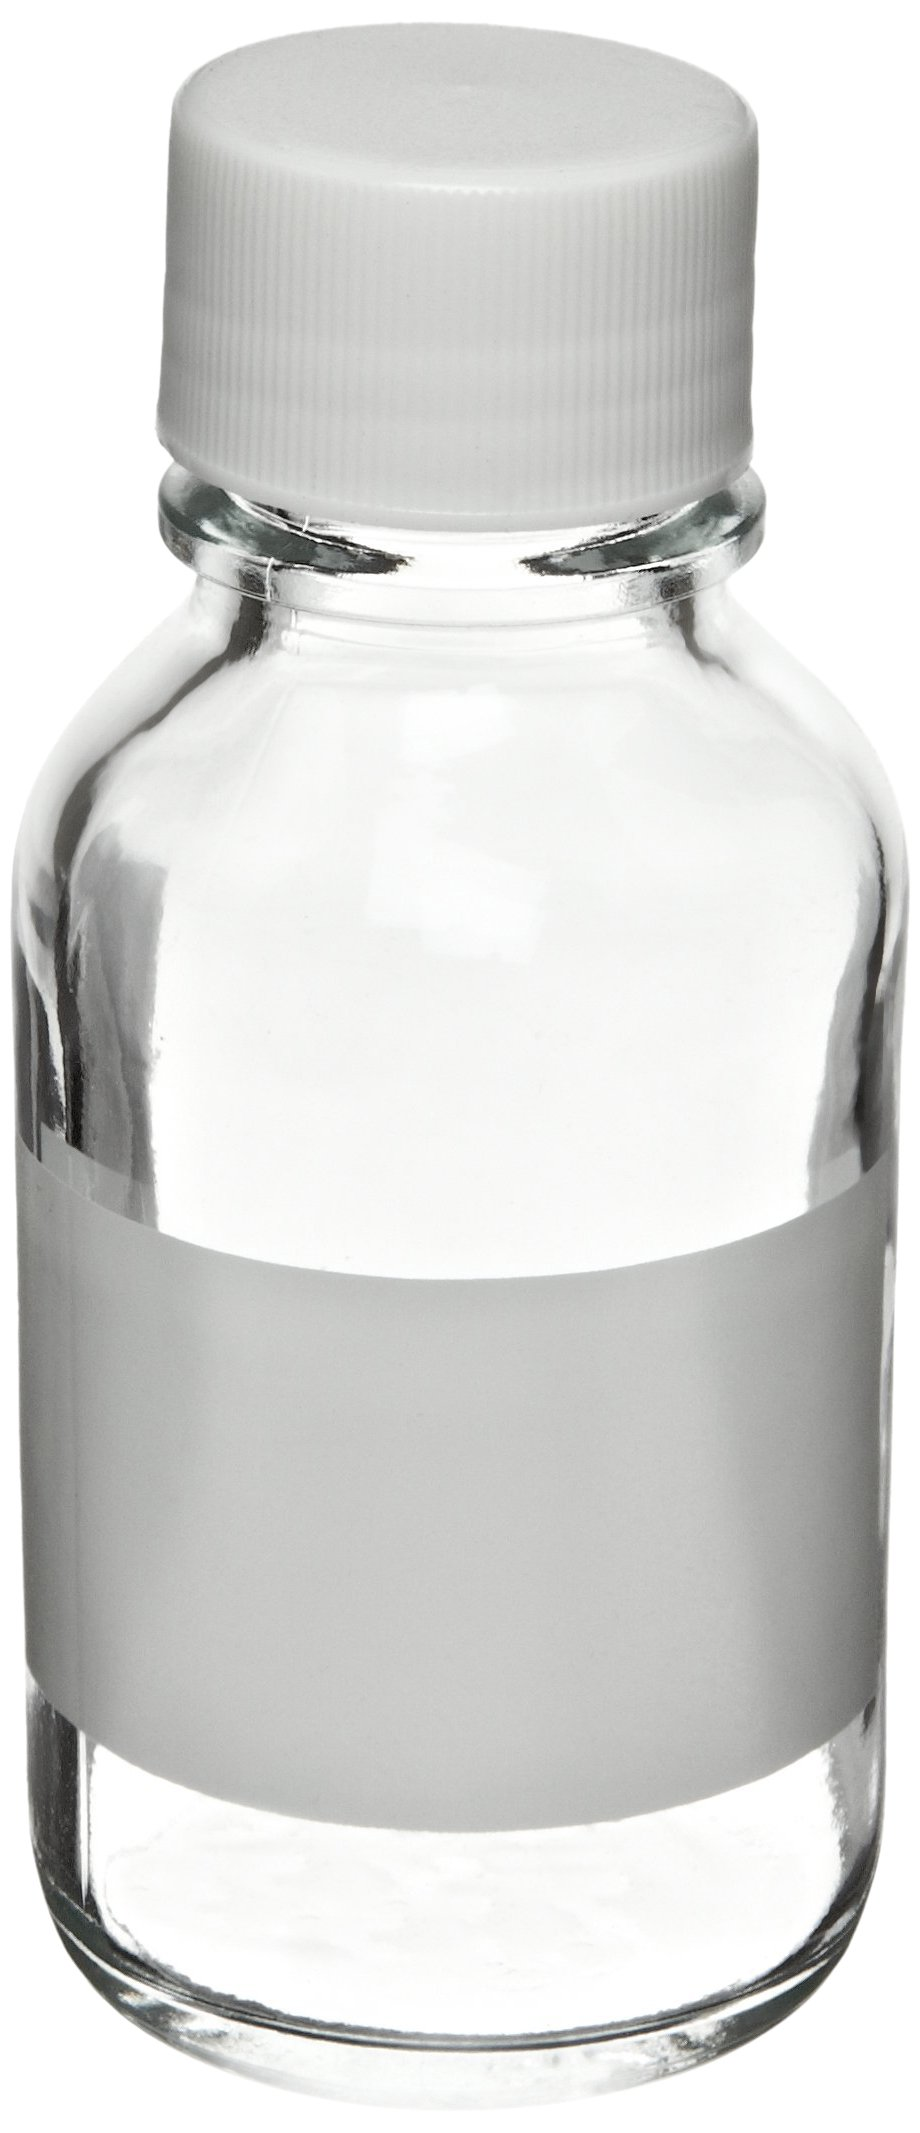 Wheaton 220163 Reagent Bottle, 125mL With 33-430 Solid Polypropylene PTFE Lined Screw Cap, 55mm x 120mm (Case of 6)